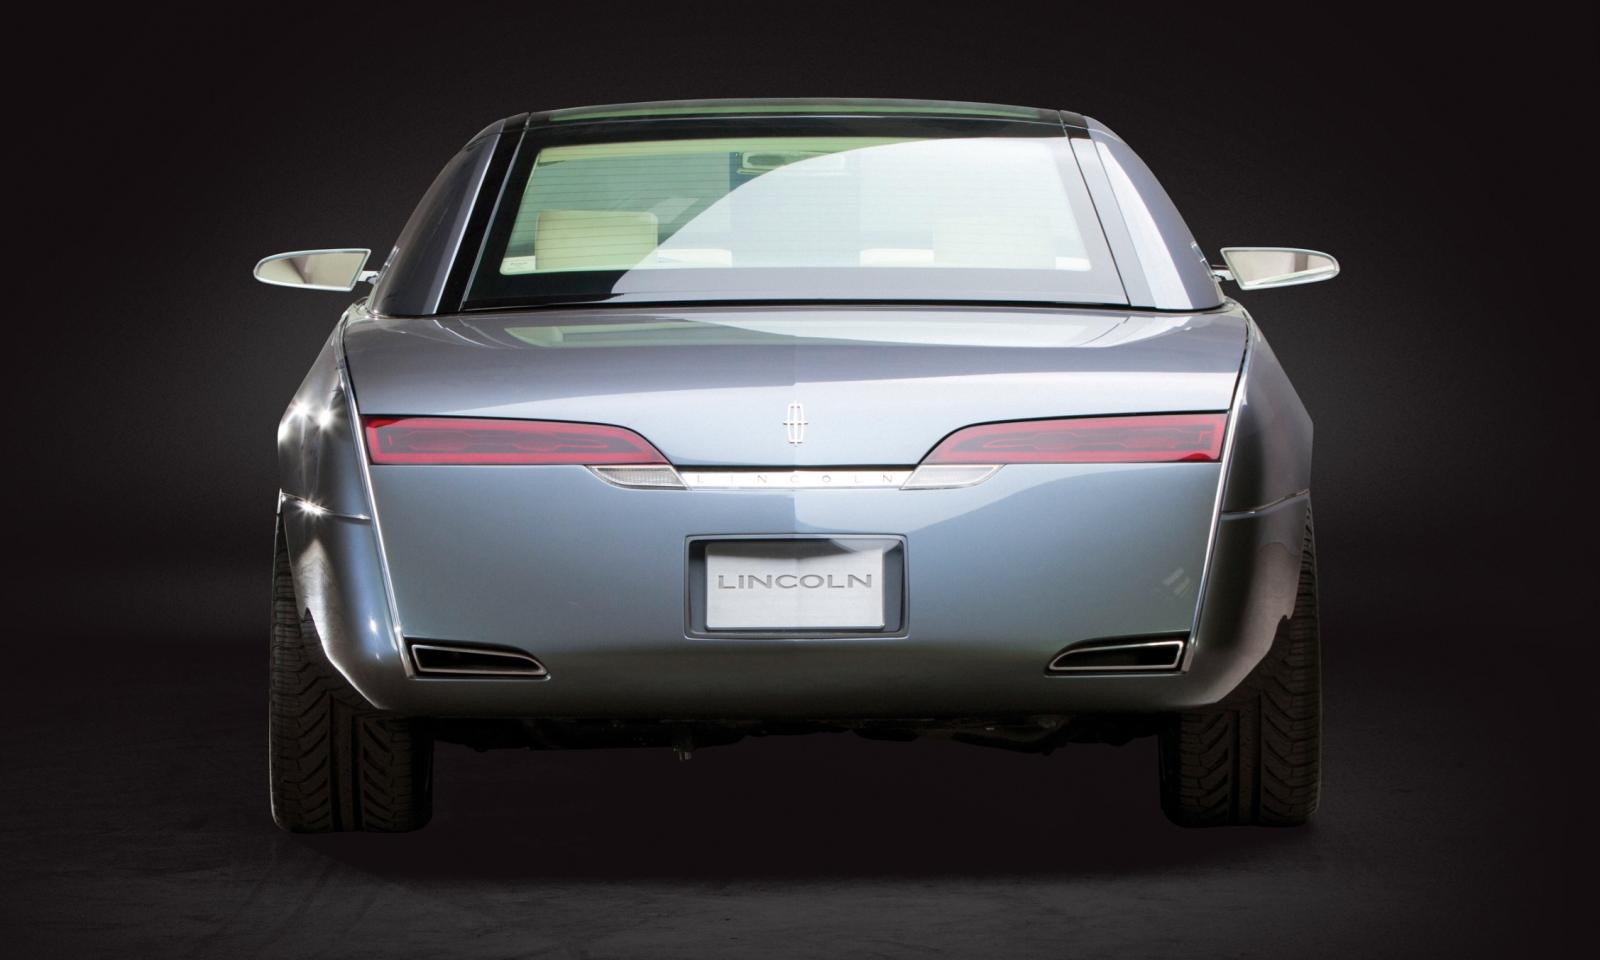 2002 lincoln continental concept 4 car revs. Black Bedroom Furniture Sets. Home Design Ideas